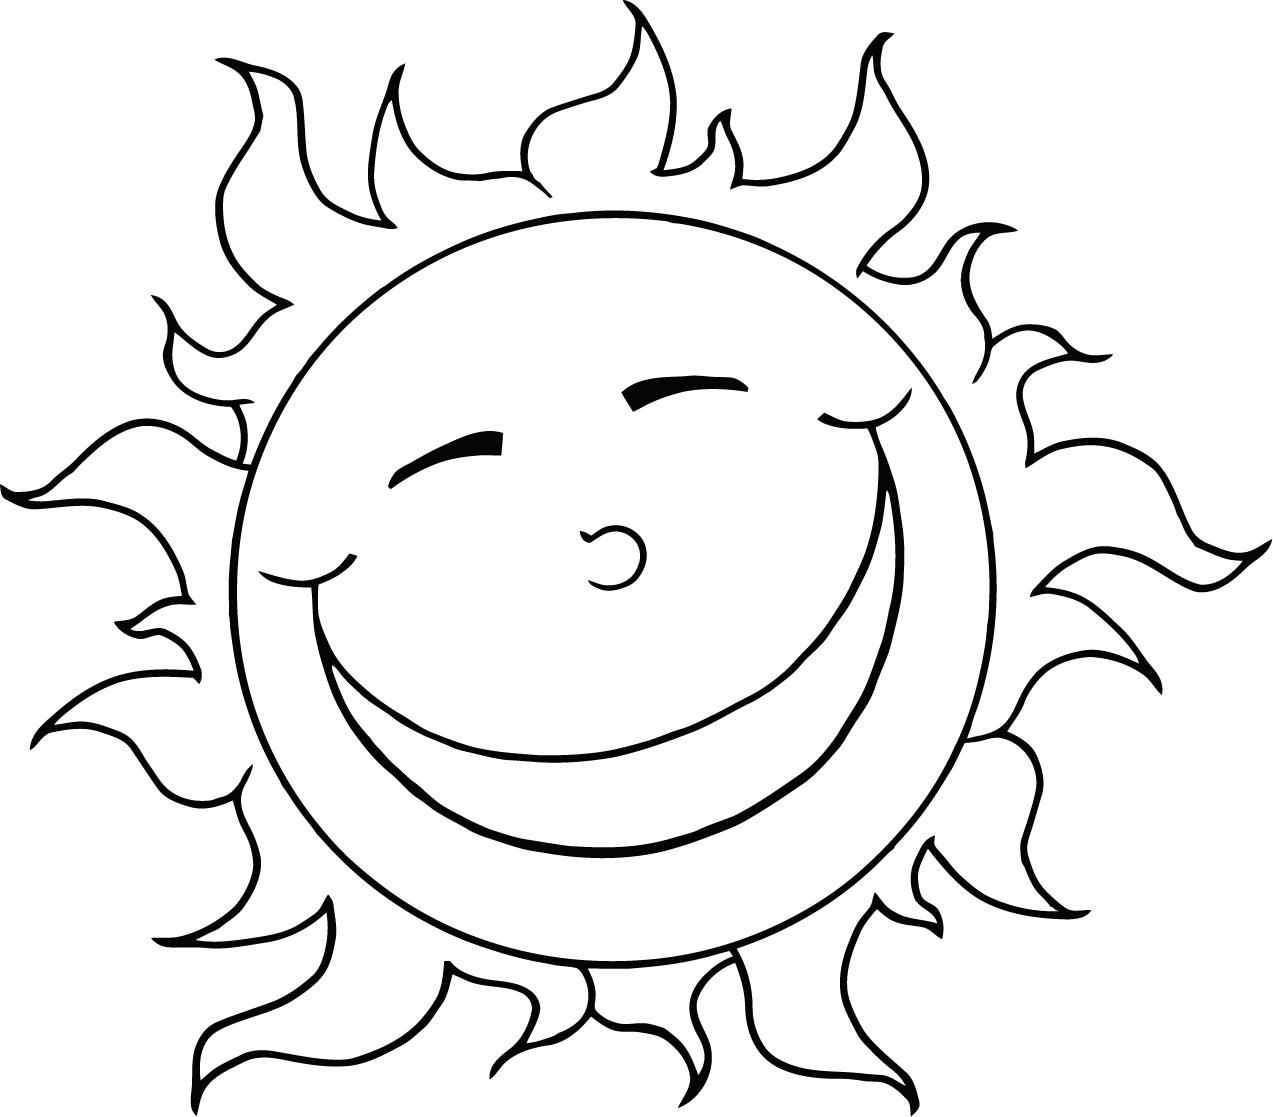 sun coloring pages to download and print for free - Images Coloring Pages Kids